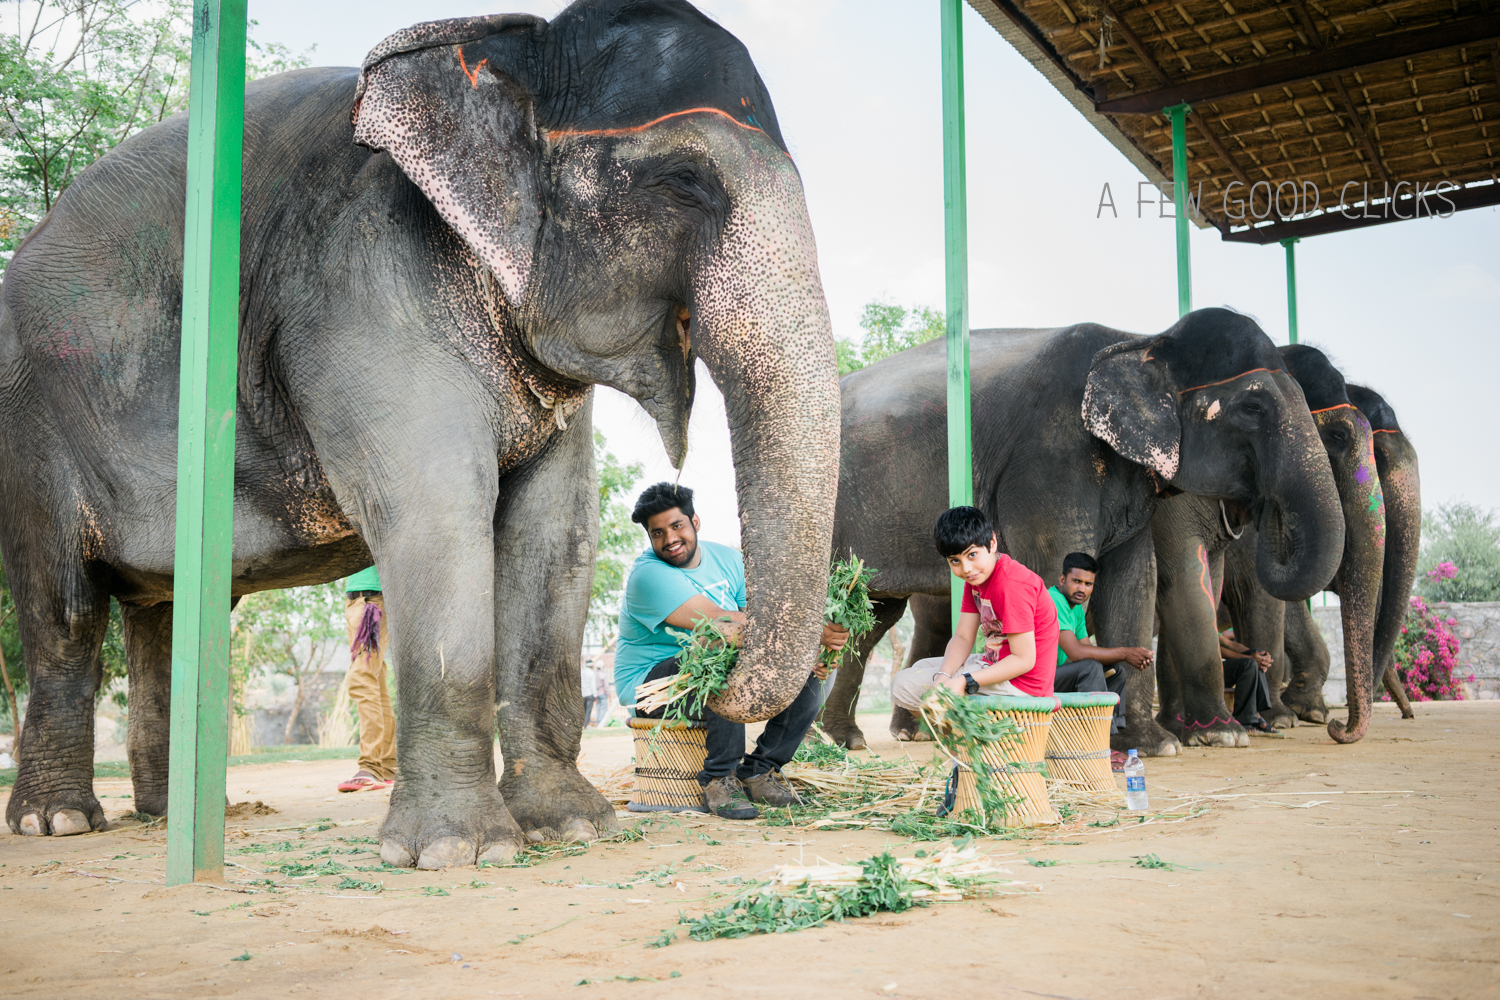 Smiles   Can you see Chanchal smiling here? Magical indeed!  #howtomakeelephantshappy ?  #feed #greengrass . Apparently she loves the green bits and the best kept secret told to us by her caretaker Shakir, that bundle up the green grass with the dried hay to ensure she gets all the nutrition. Sounds familiar parents? Yes, elephants are very smart and  just like your naughty tots they know exactly how to separate the greens from the hay.